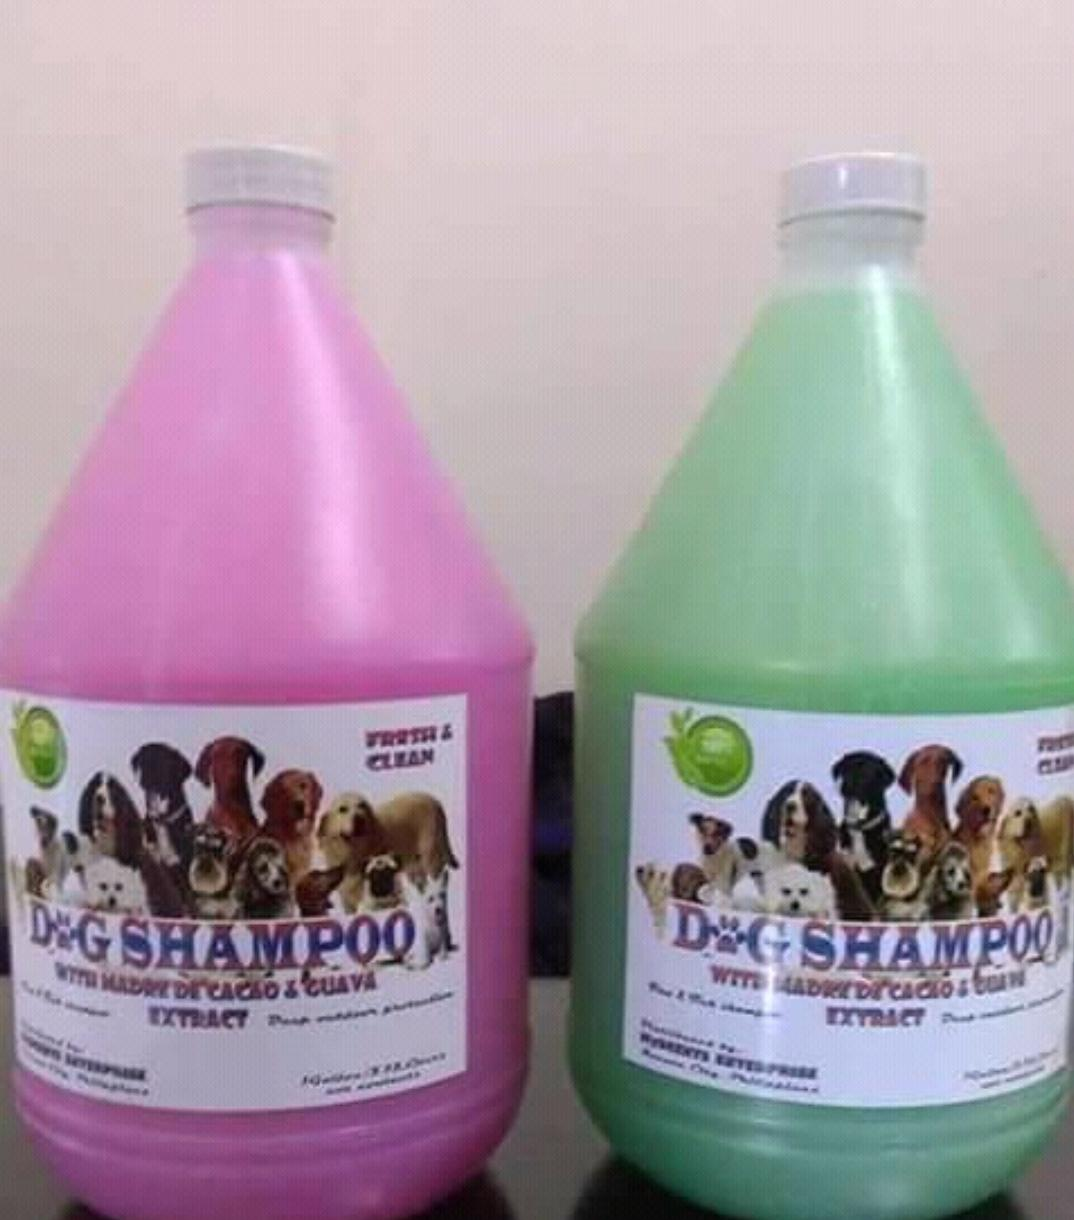 4 Liters Dog Shampoo Madre De Cacao With Guava Extract By Rgjay10489.